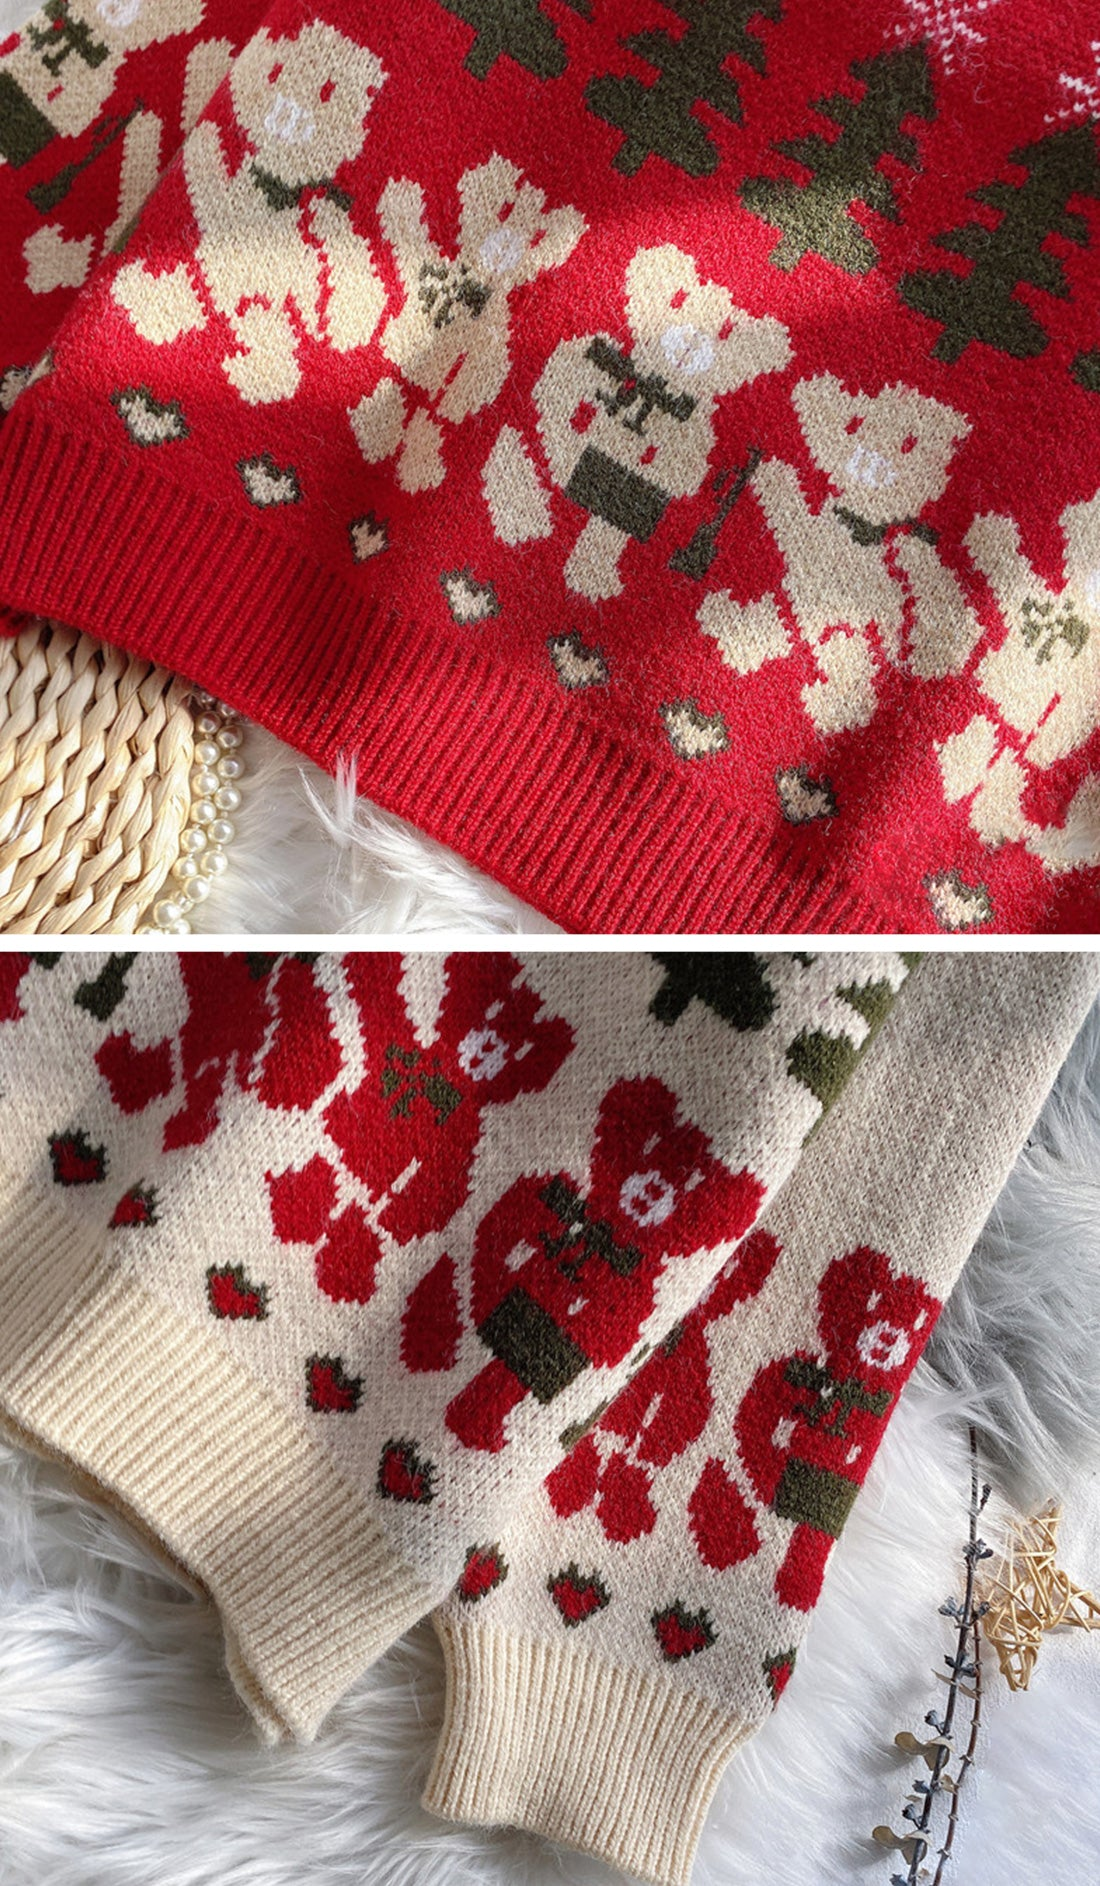 Time For A Beer Christmas Sweater Details 2